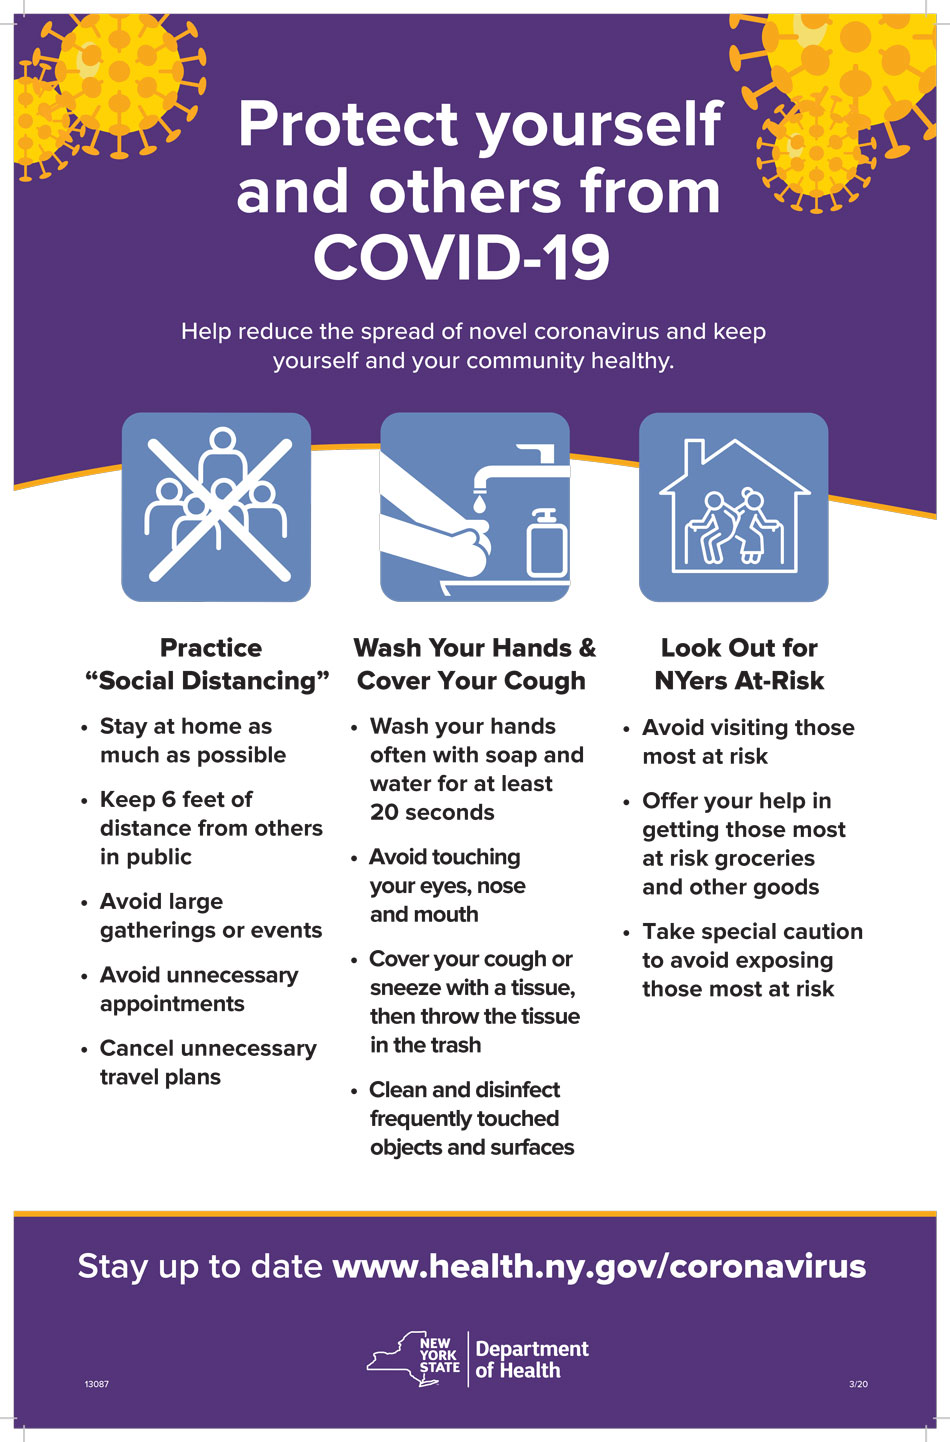 NYS-Protect Yourself from Covid 19